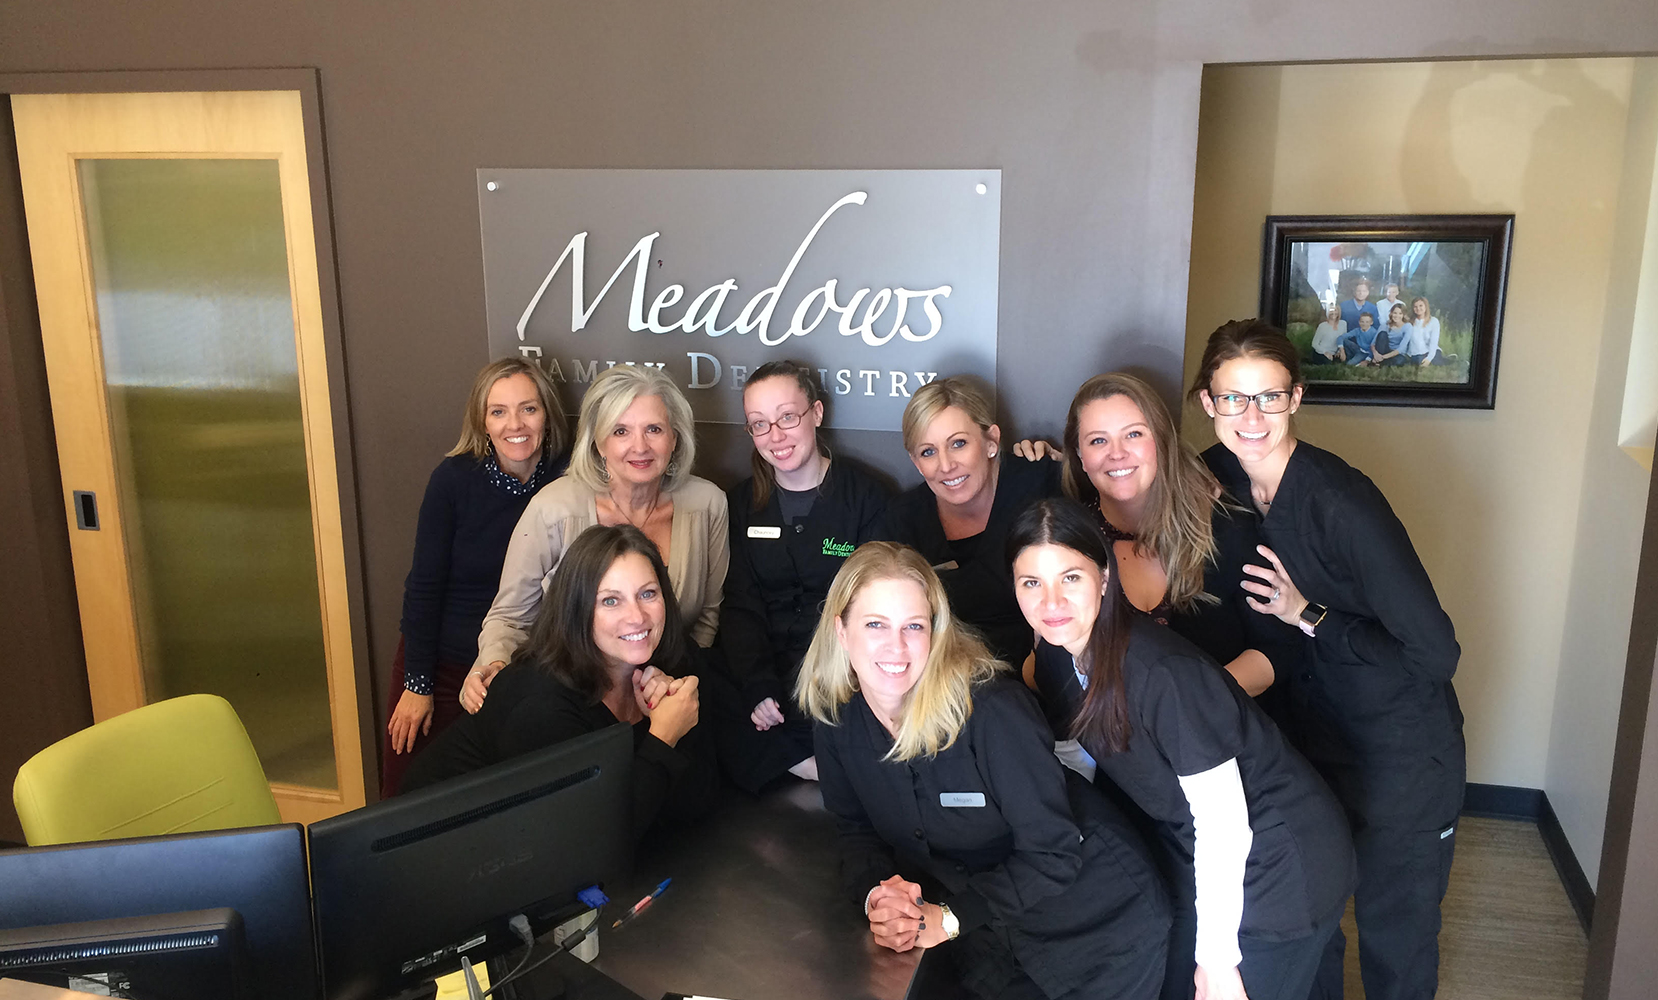 Meadows Family Dentistry staff